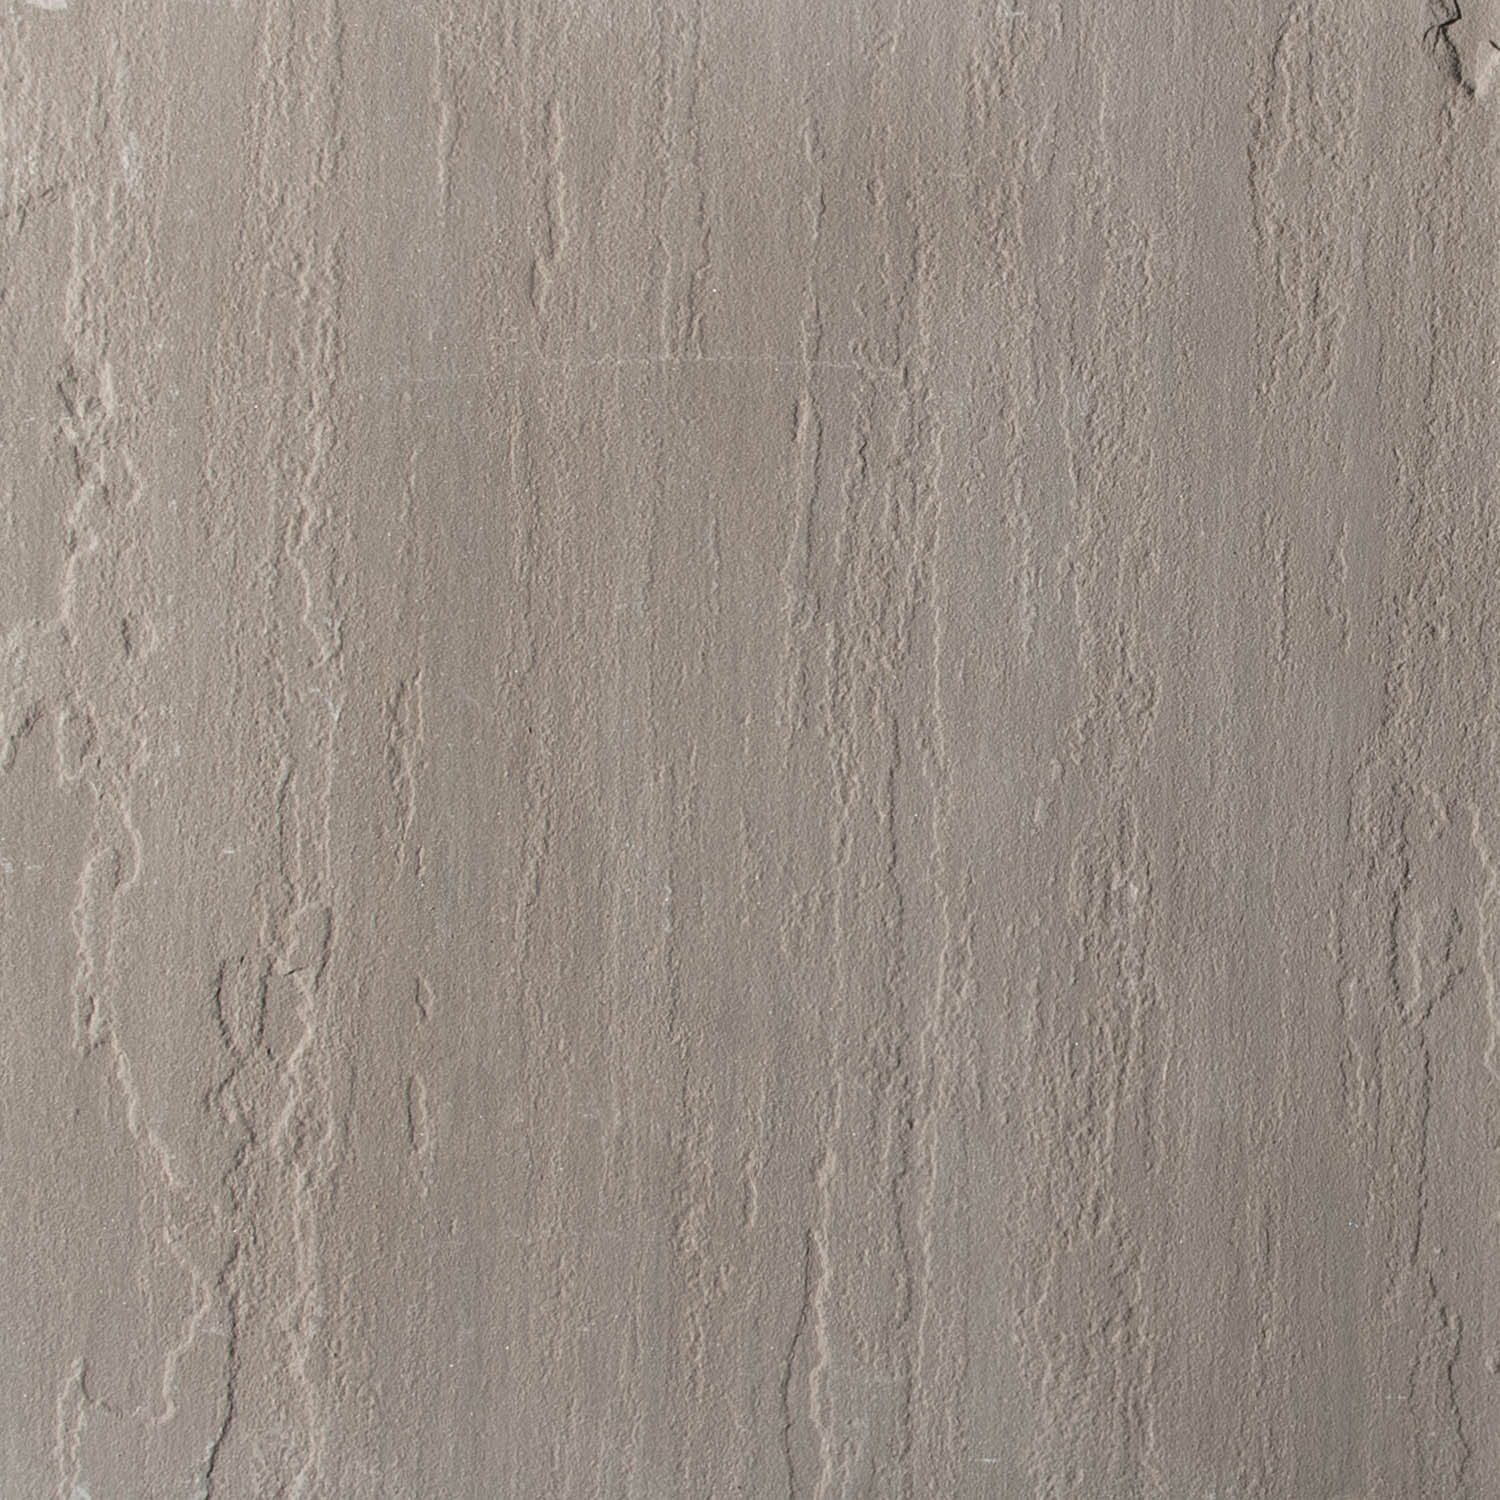 India Slate Grey guillotined step swatch